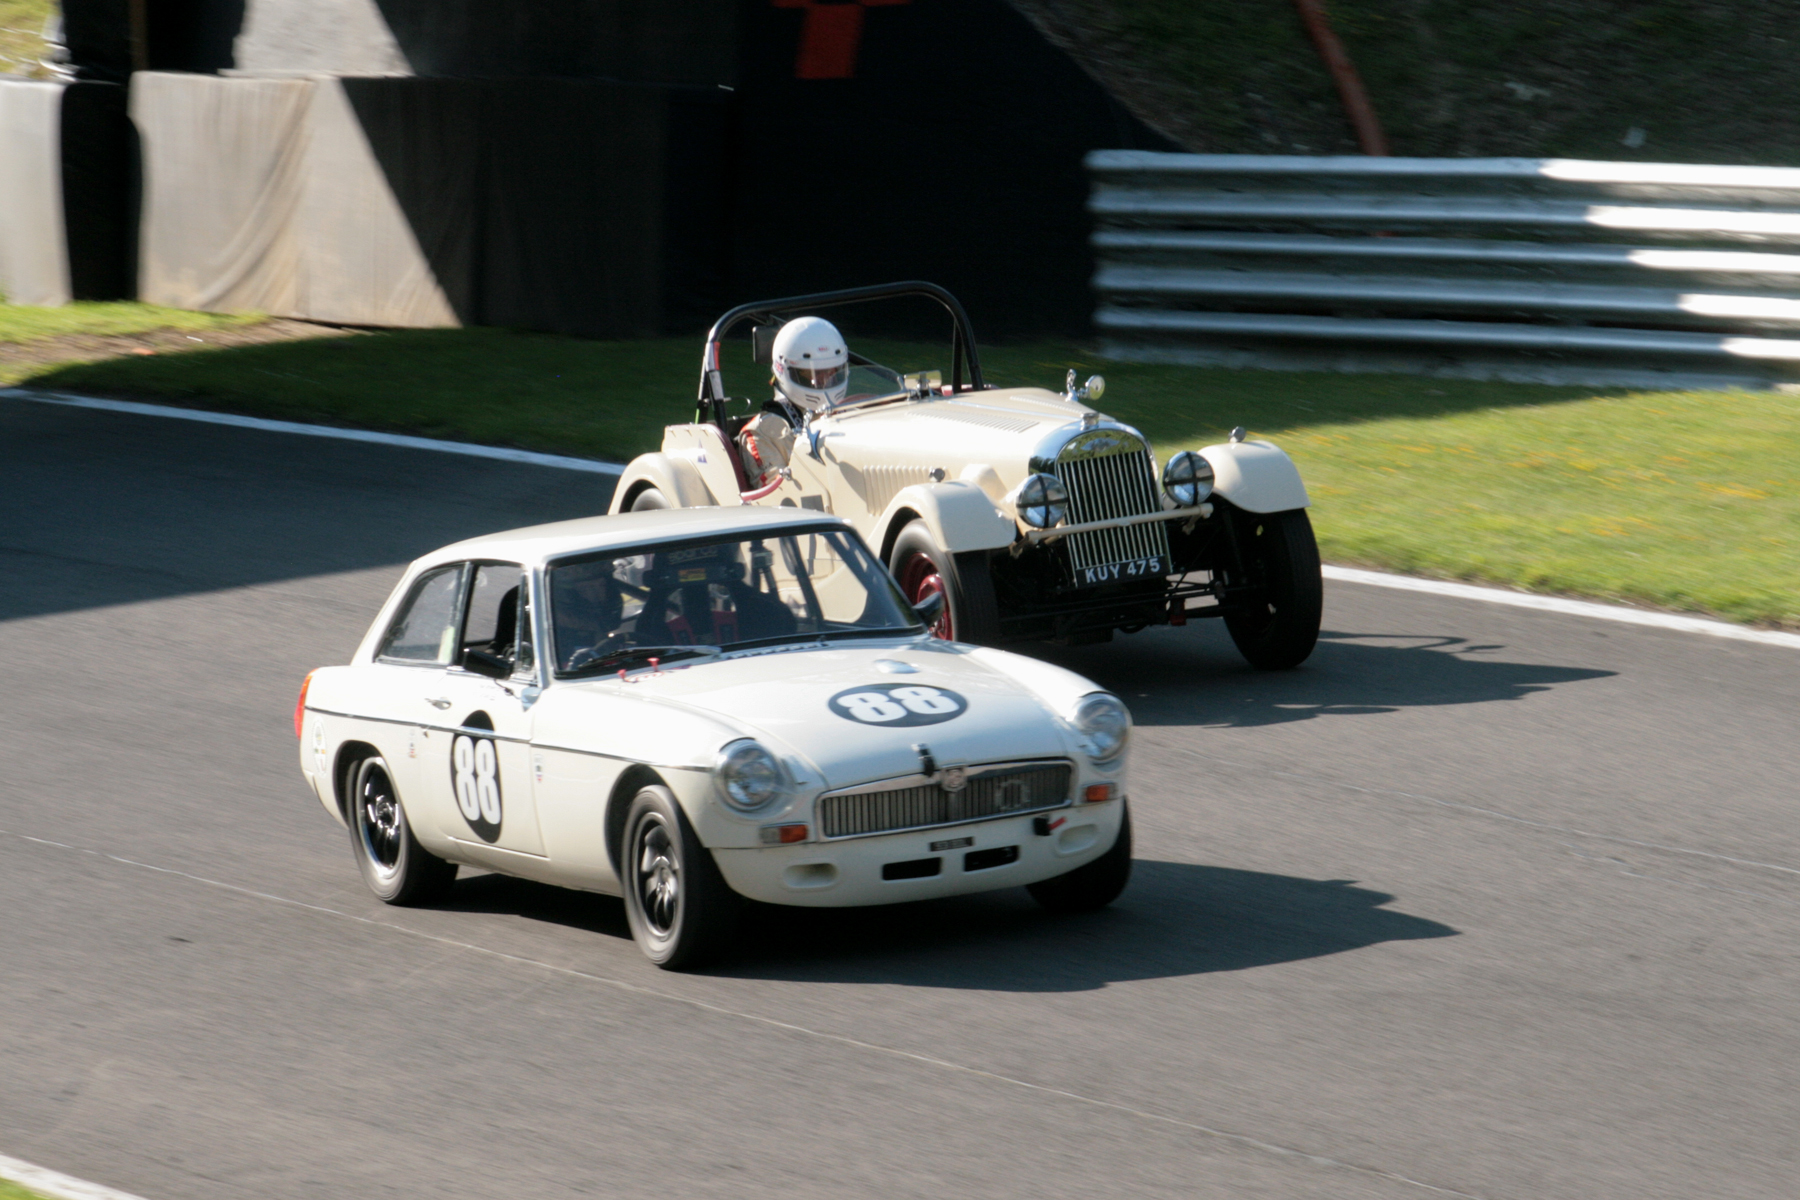 Mark Shears is passed by Harry Brown in the MGB GT